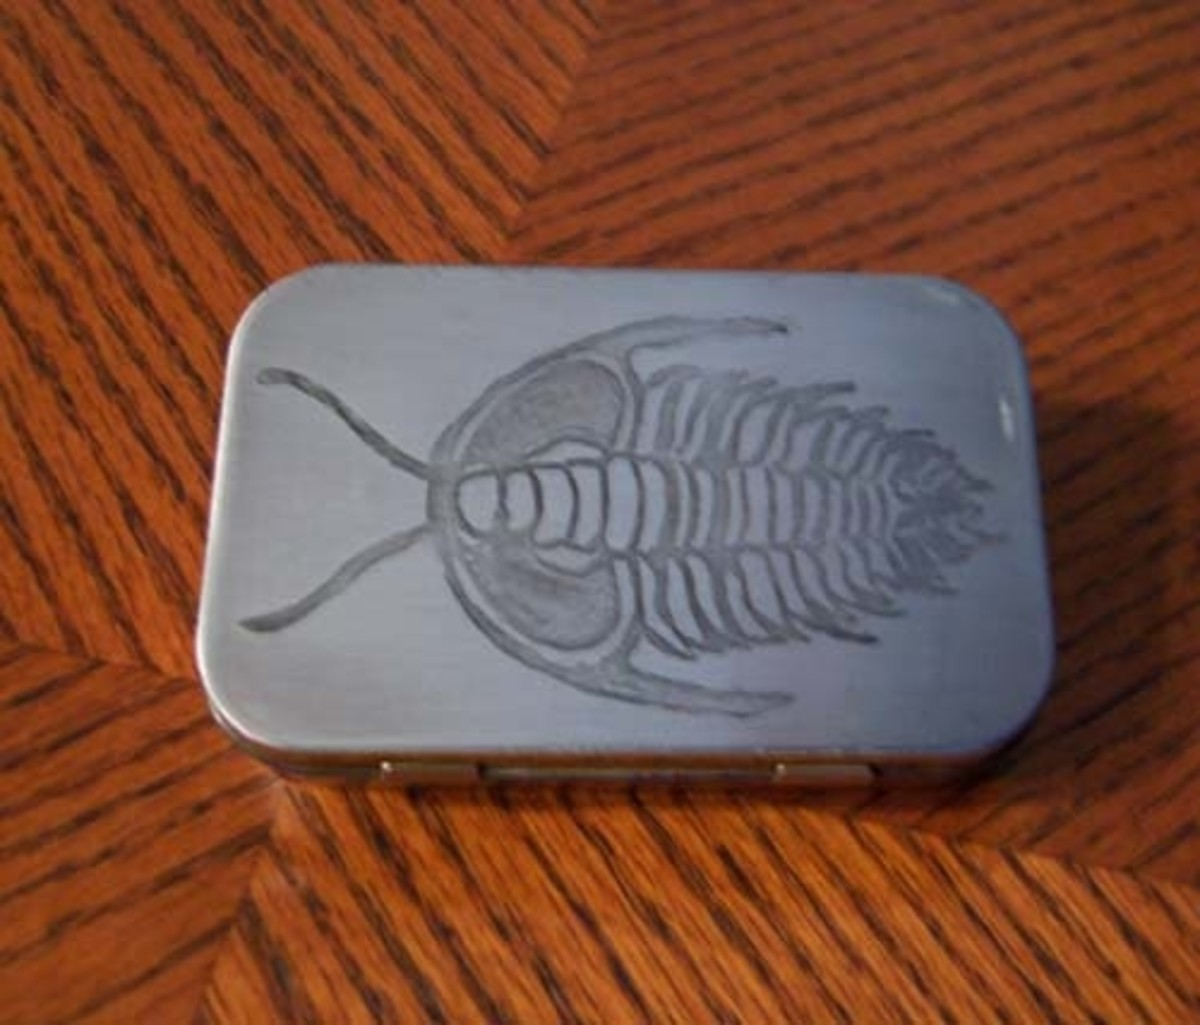 Trilobite etched into an Altoids tin, photo by Kylyssa Shay